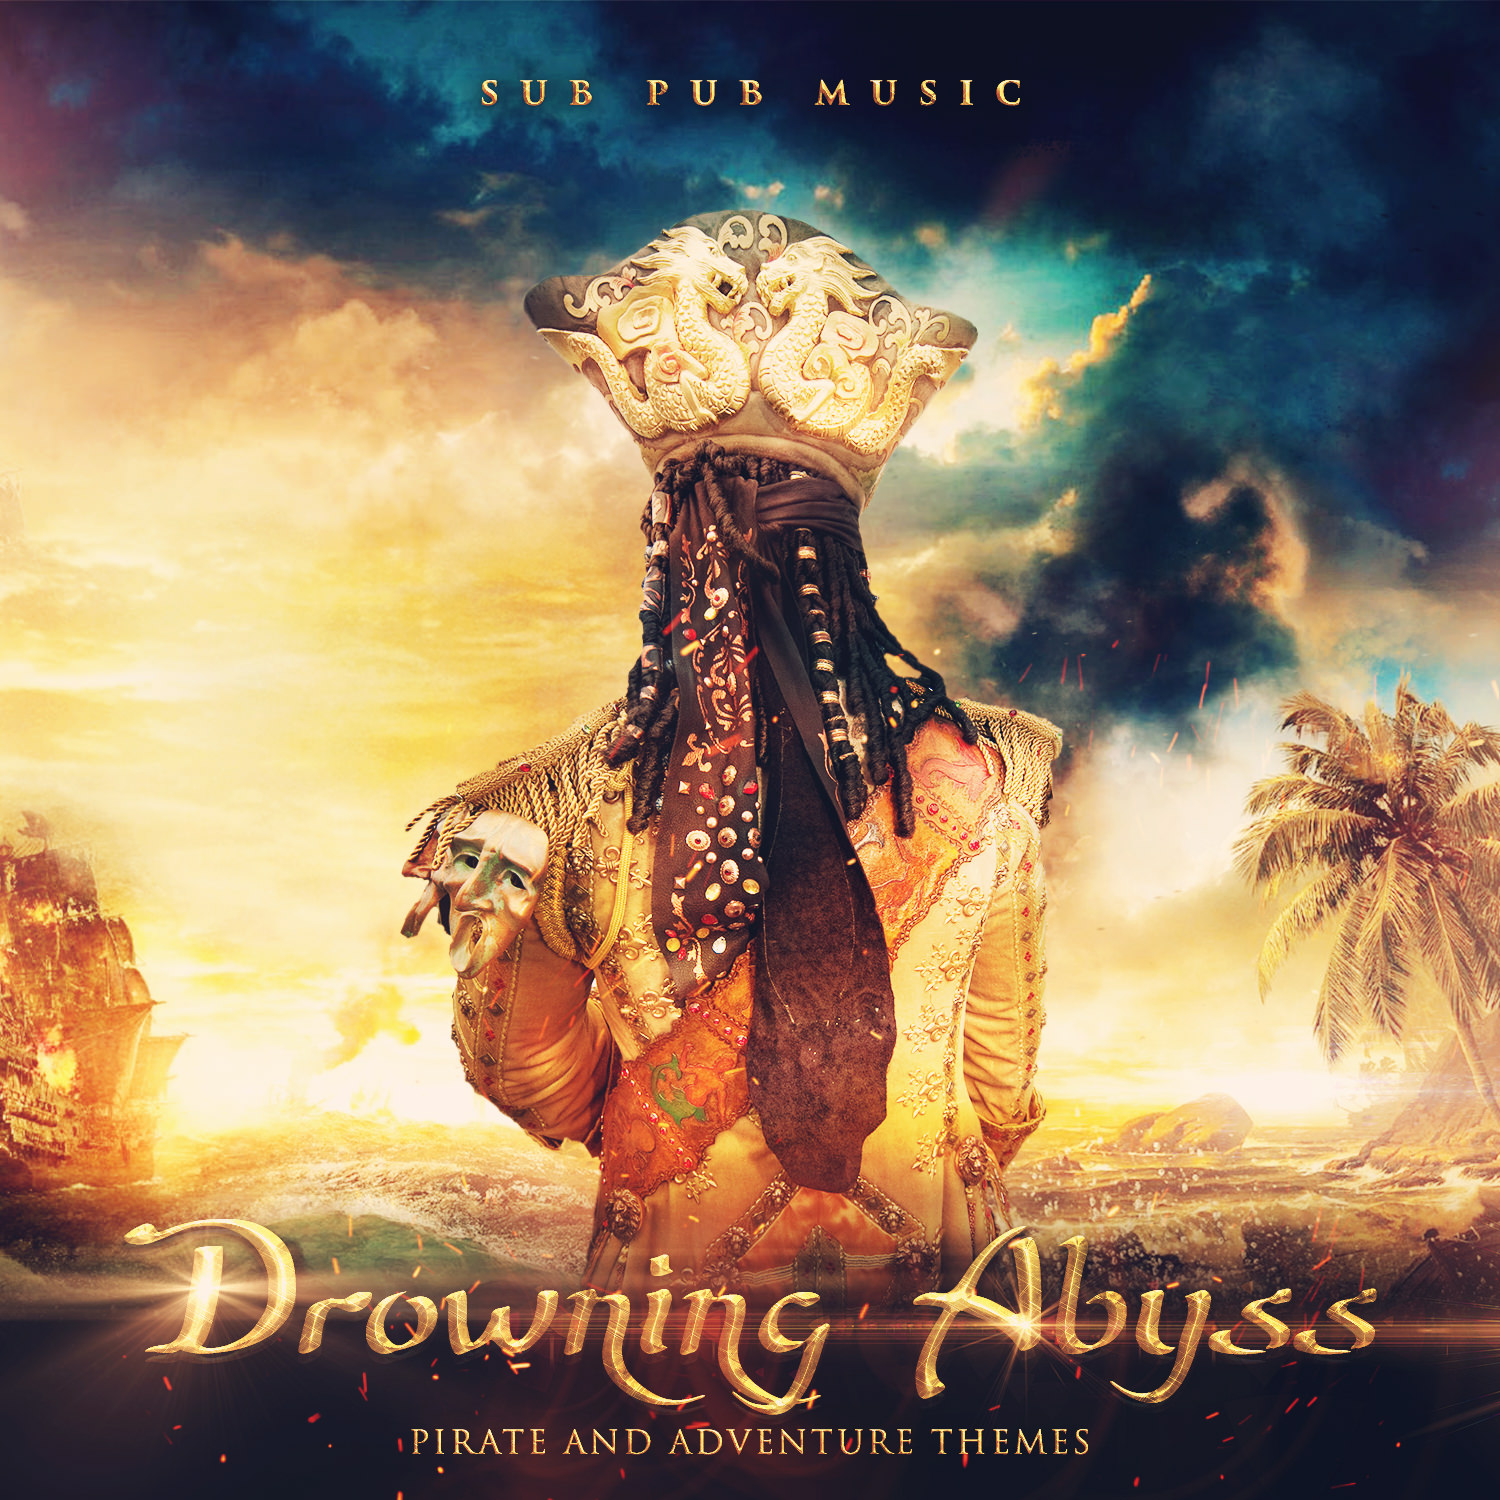 Copy of Sub Pub Music - Drowning Abyss - Cody Still - Composer - Music